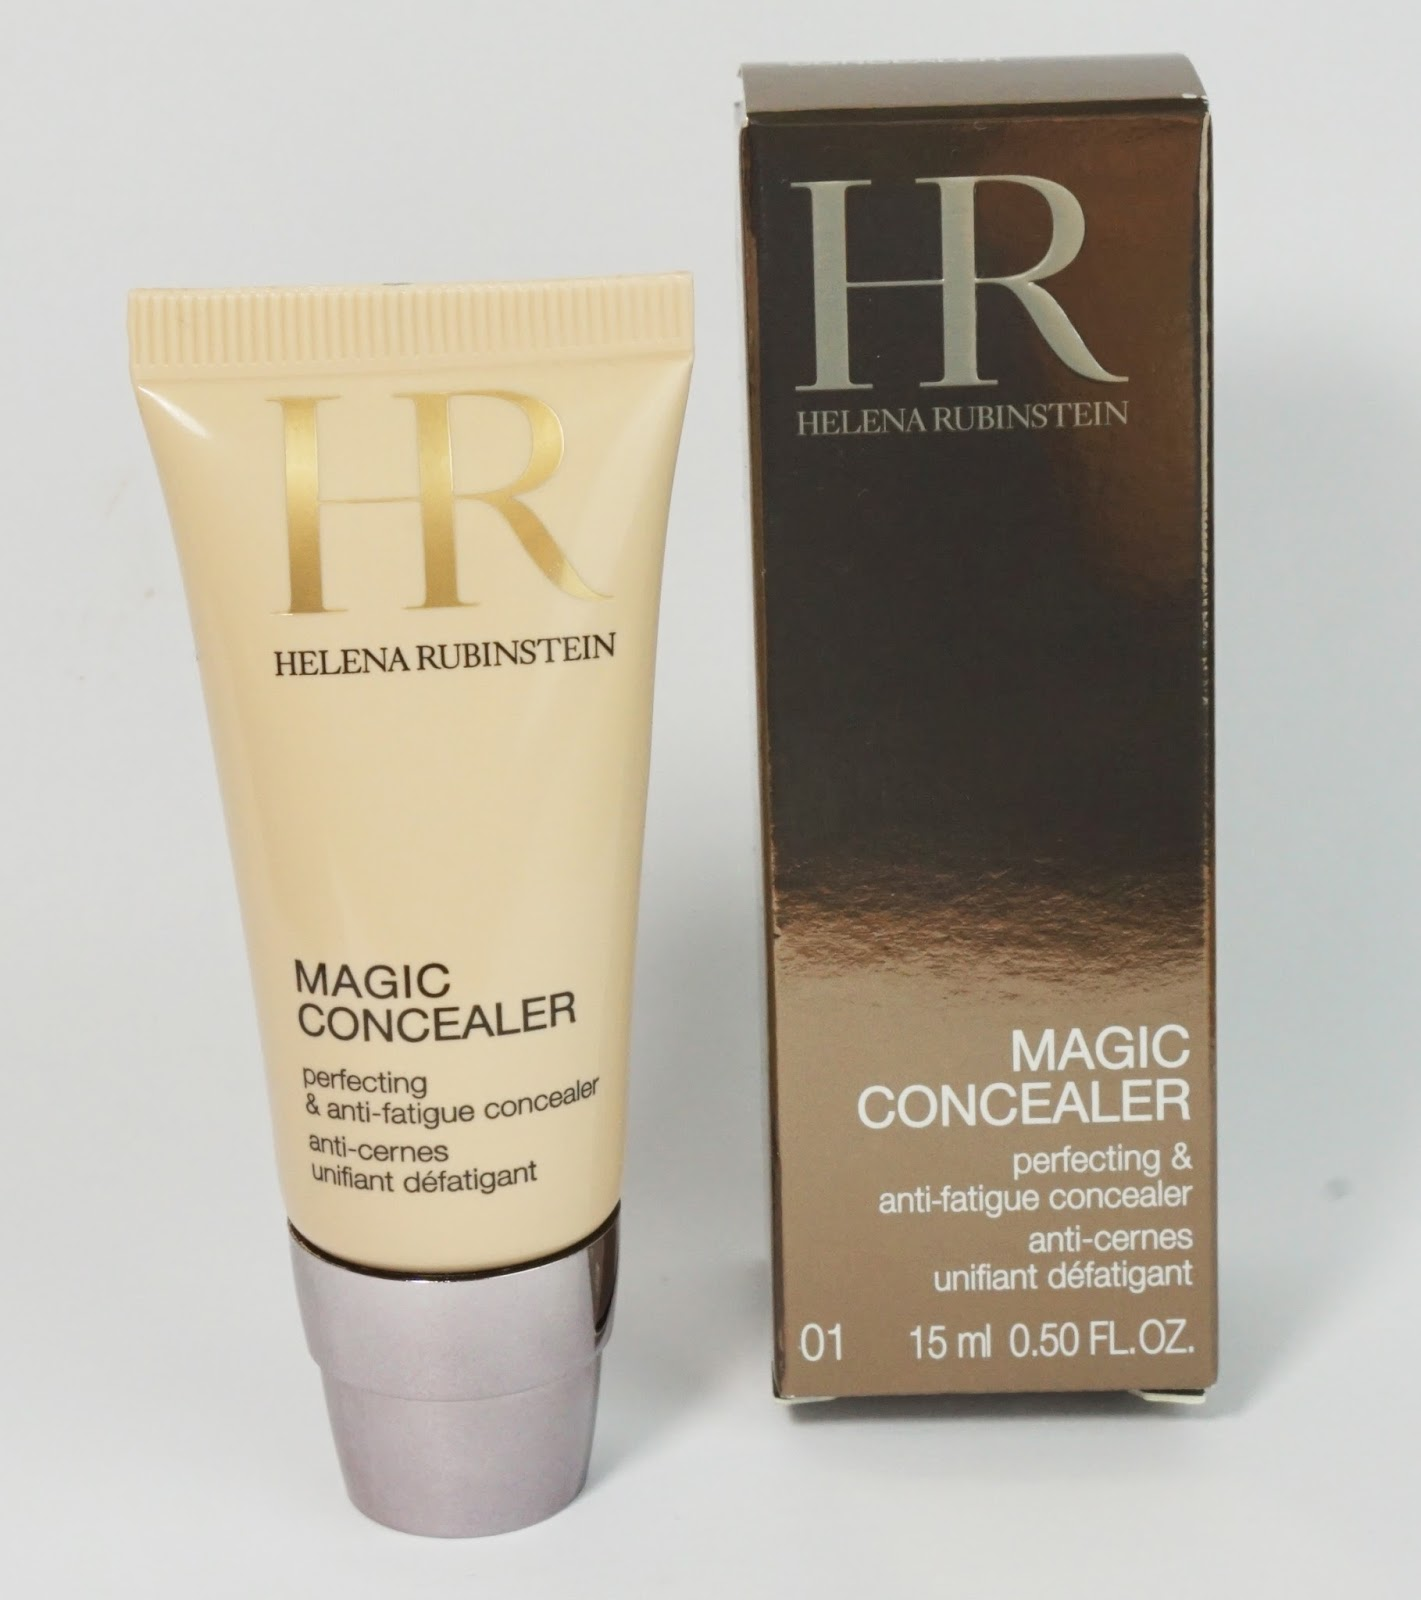 Helena Rubinstein - Magic Concealer (01)